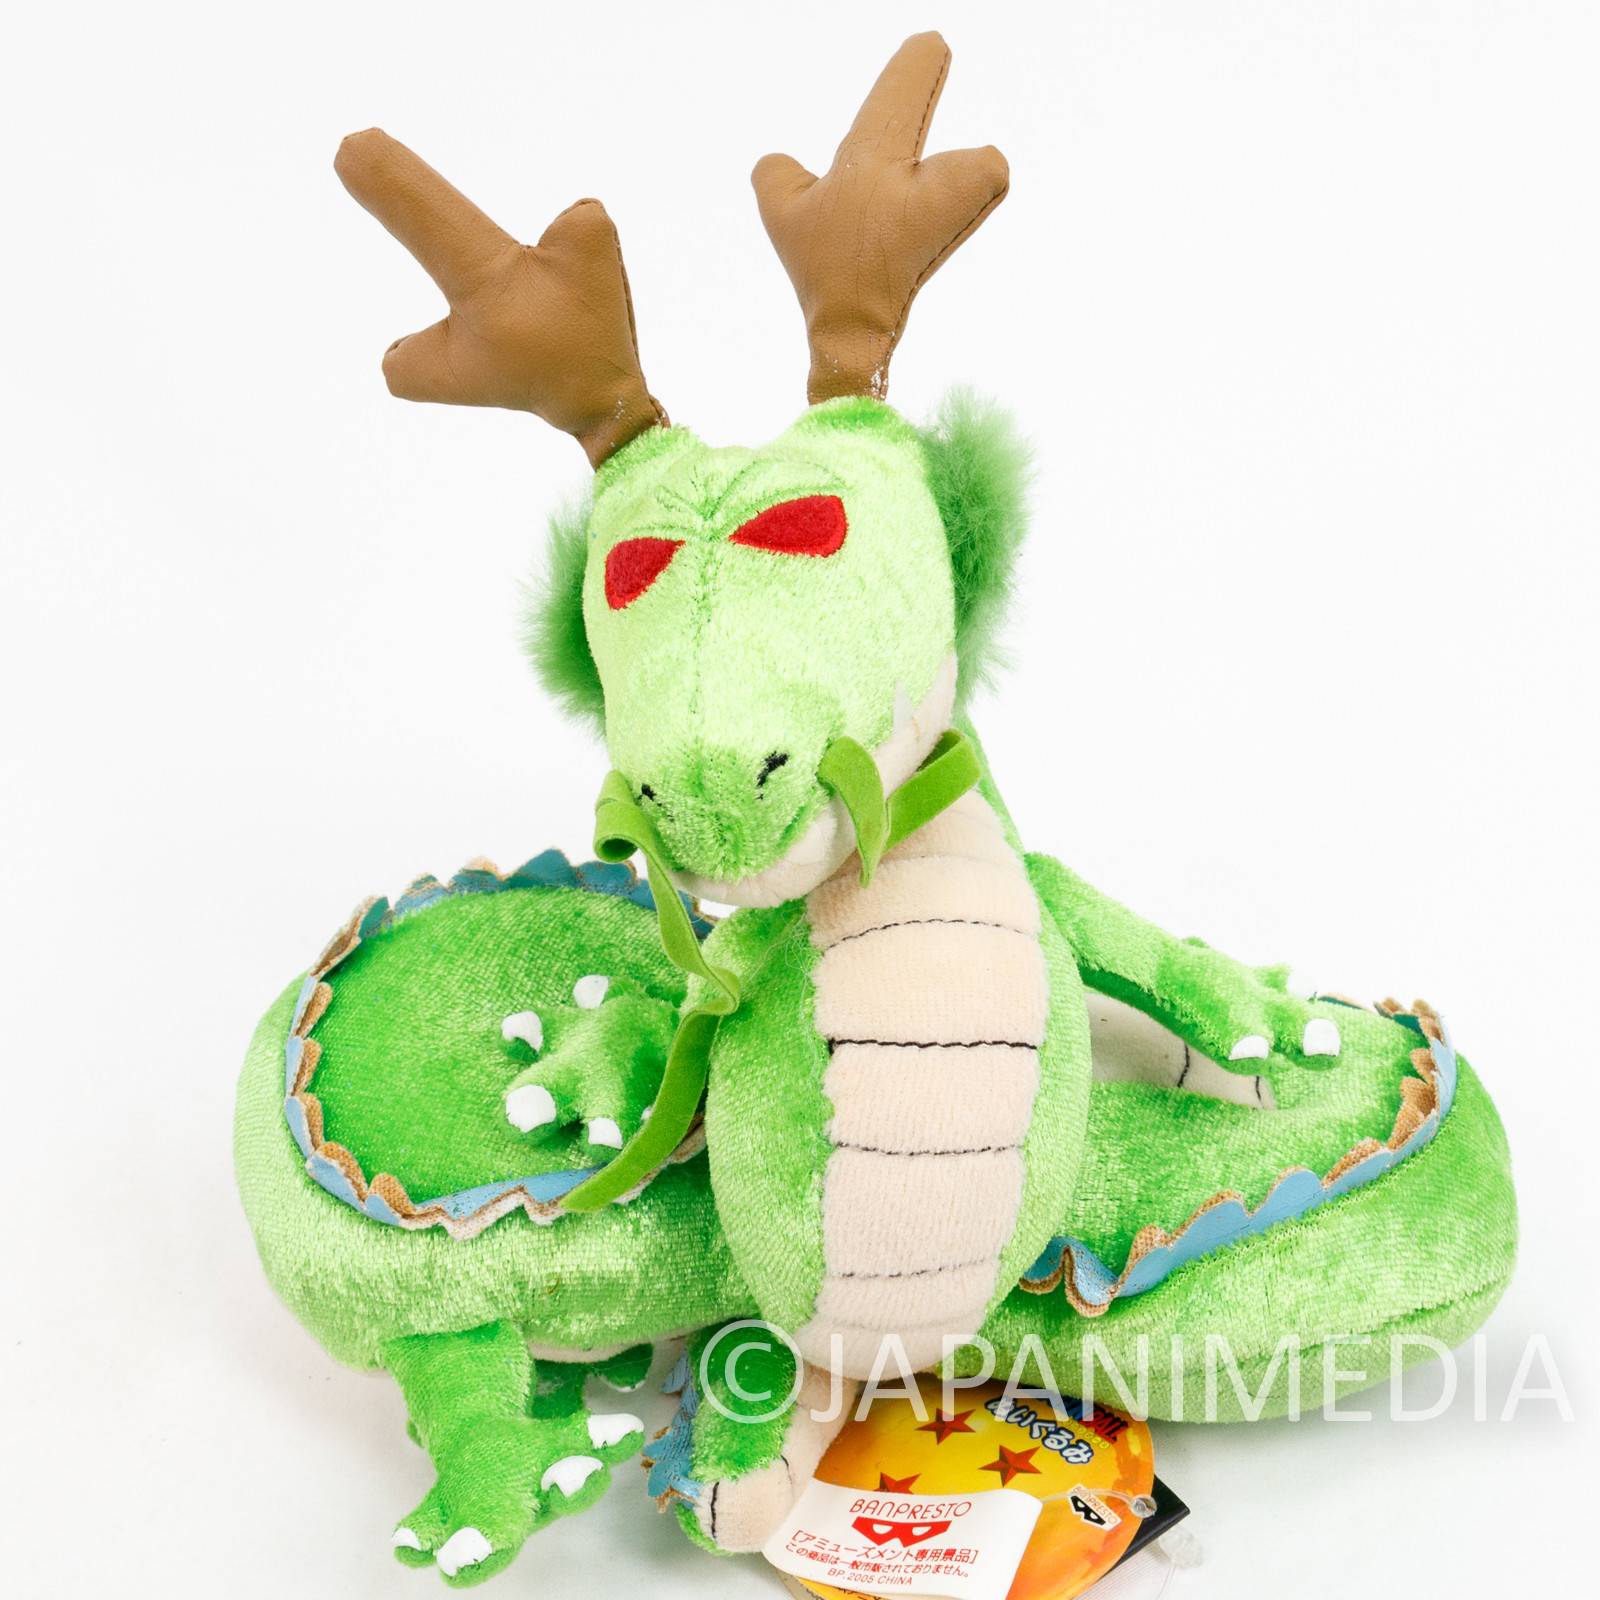 Dragon Ball Shenron Plush Doll Banpresto JAPAN ANIME MANGA